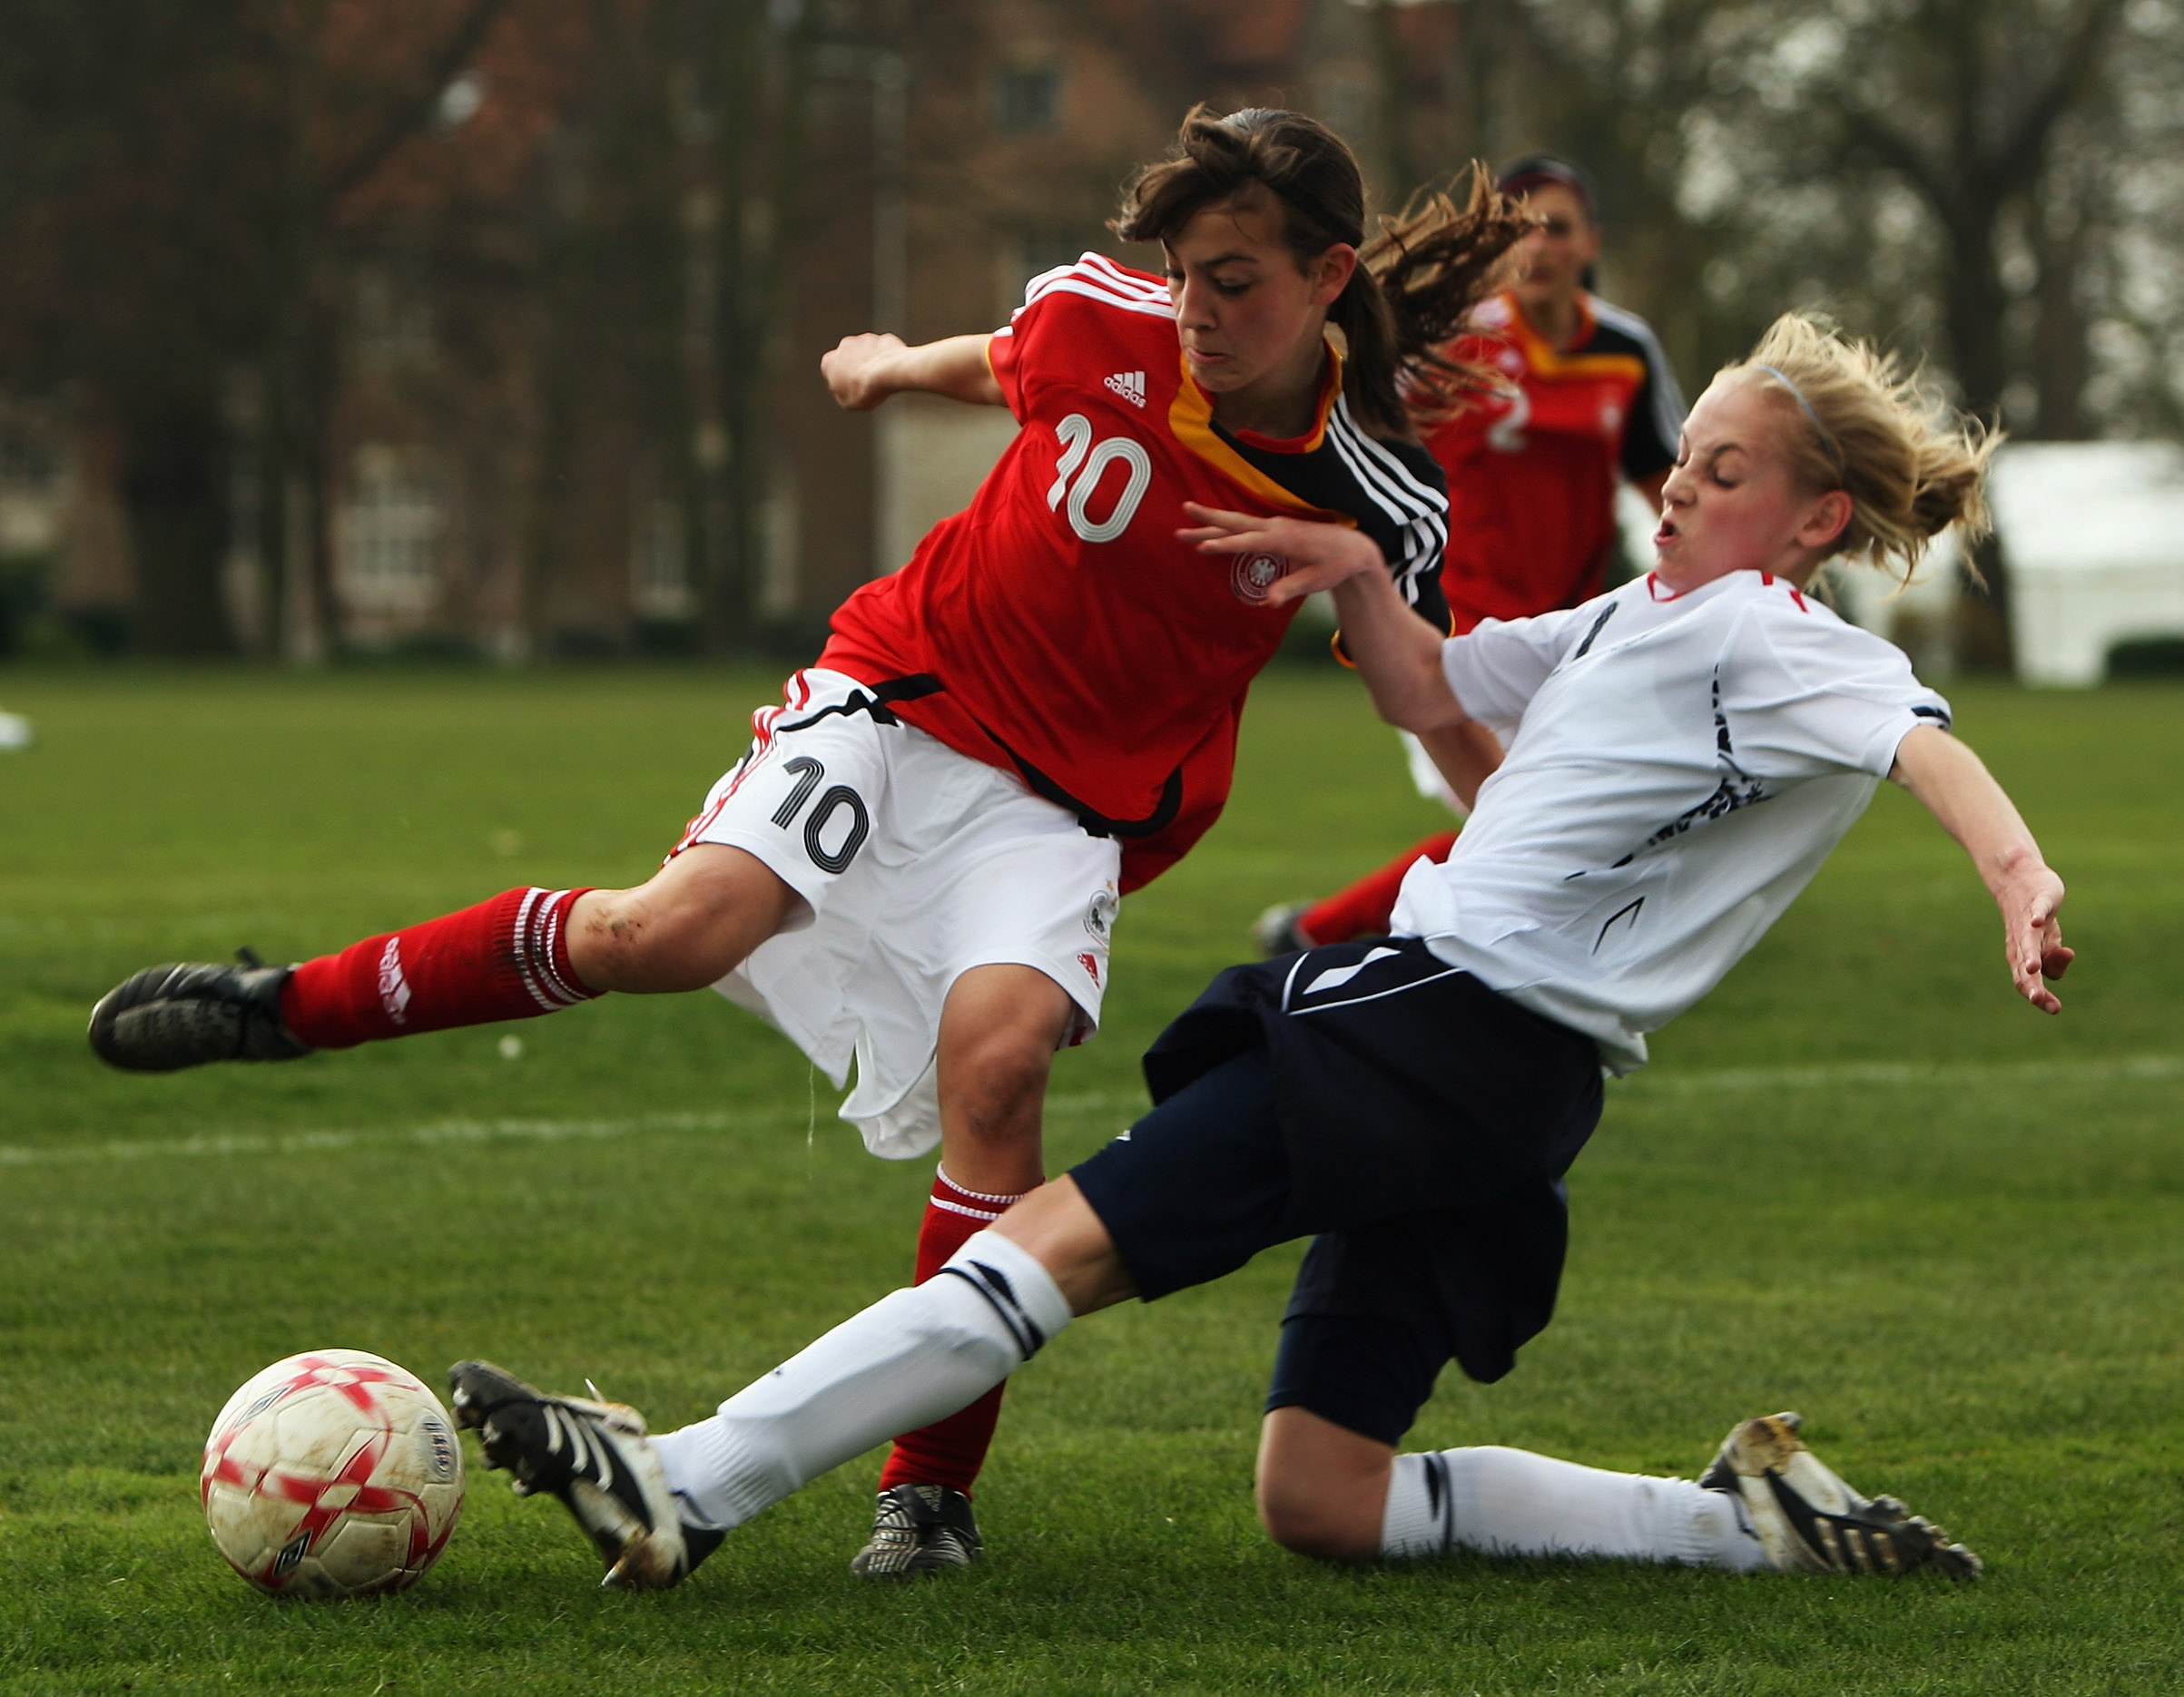 Snapshot – England U-15 girls vs Germany U-15 girls